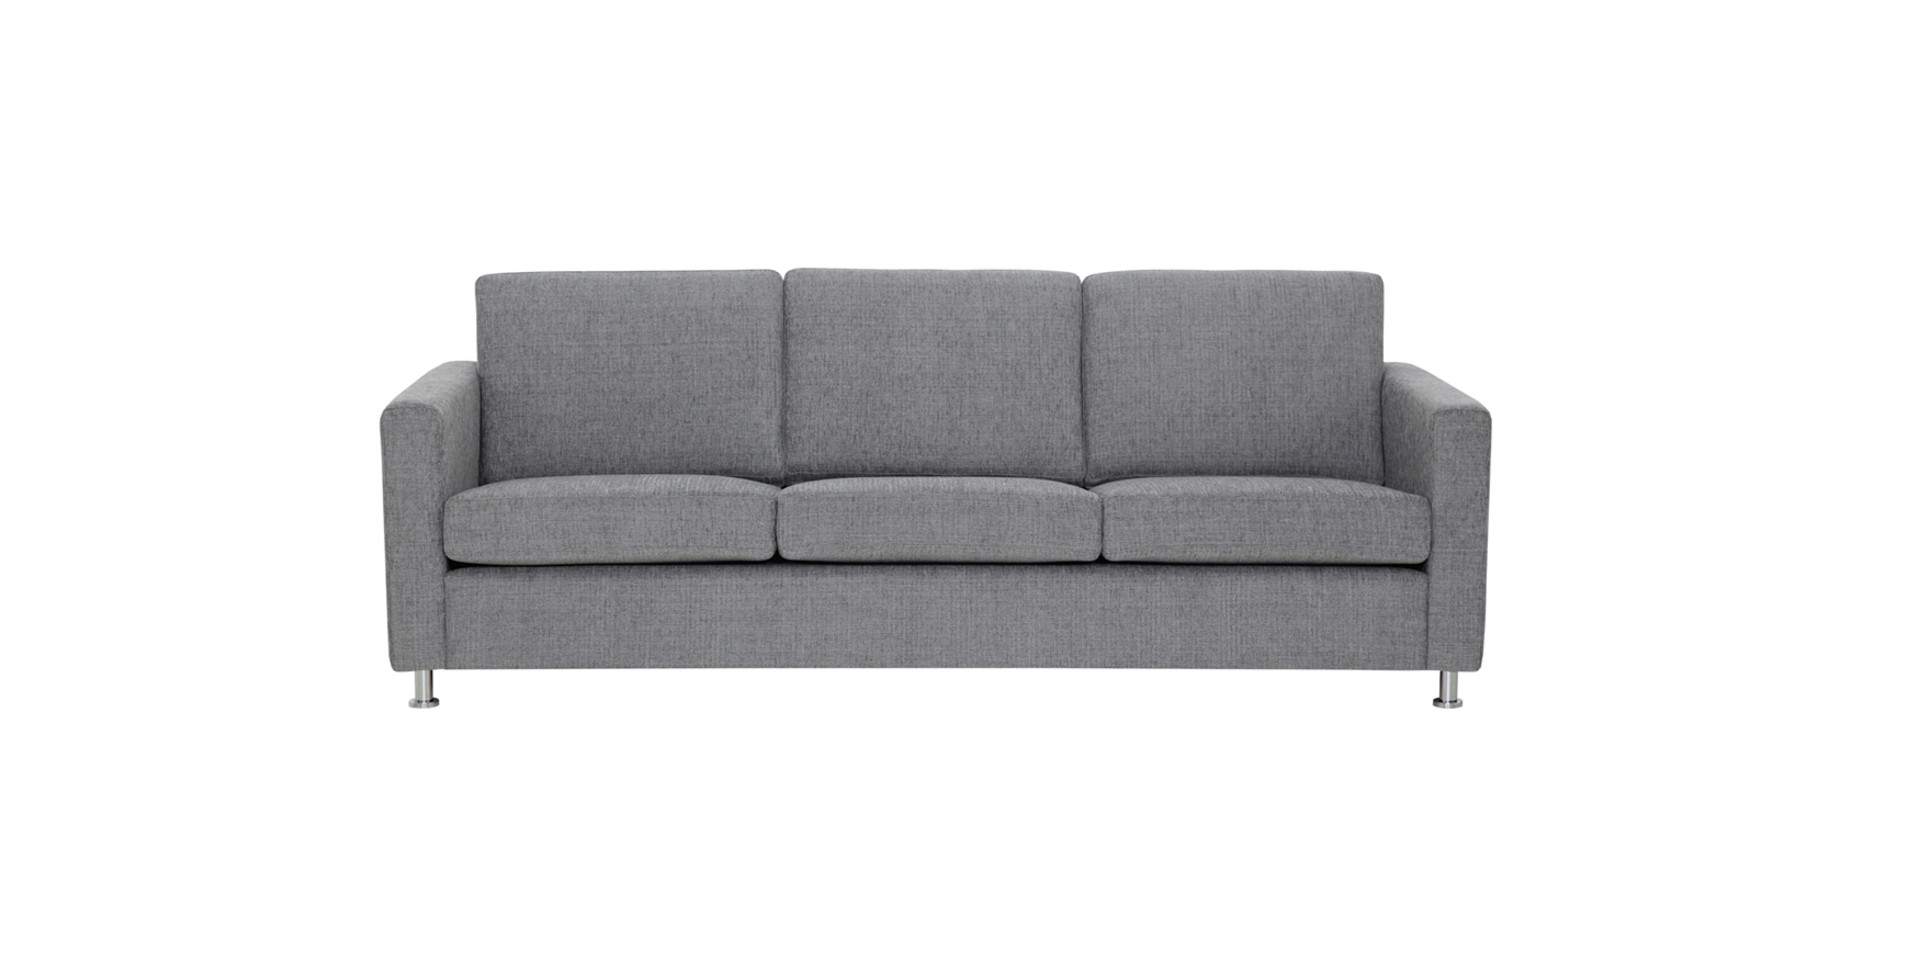 sits-palma-canape-3seater_veraam1c9grey-_1